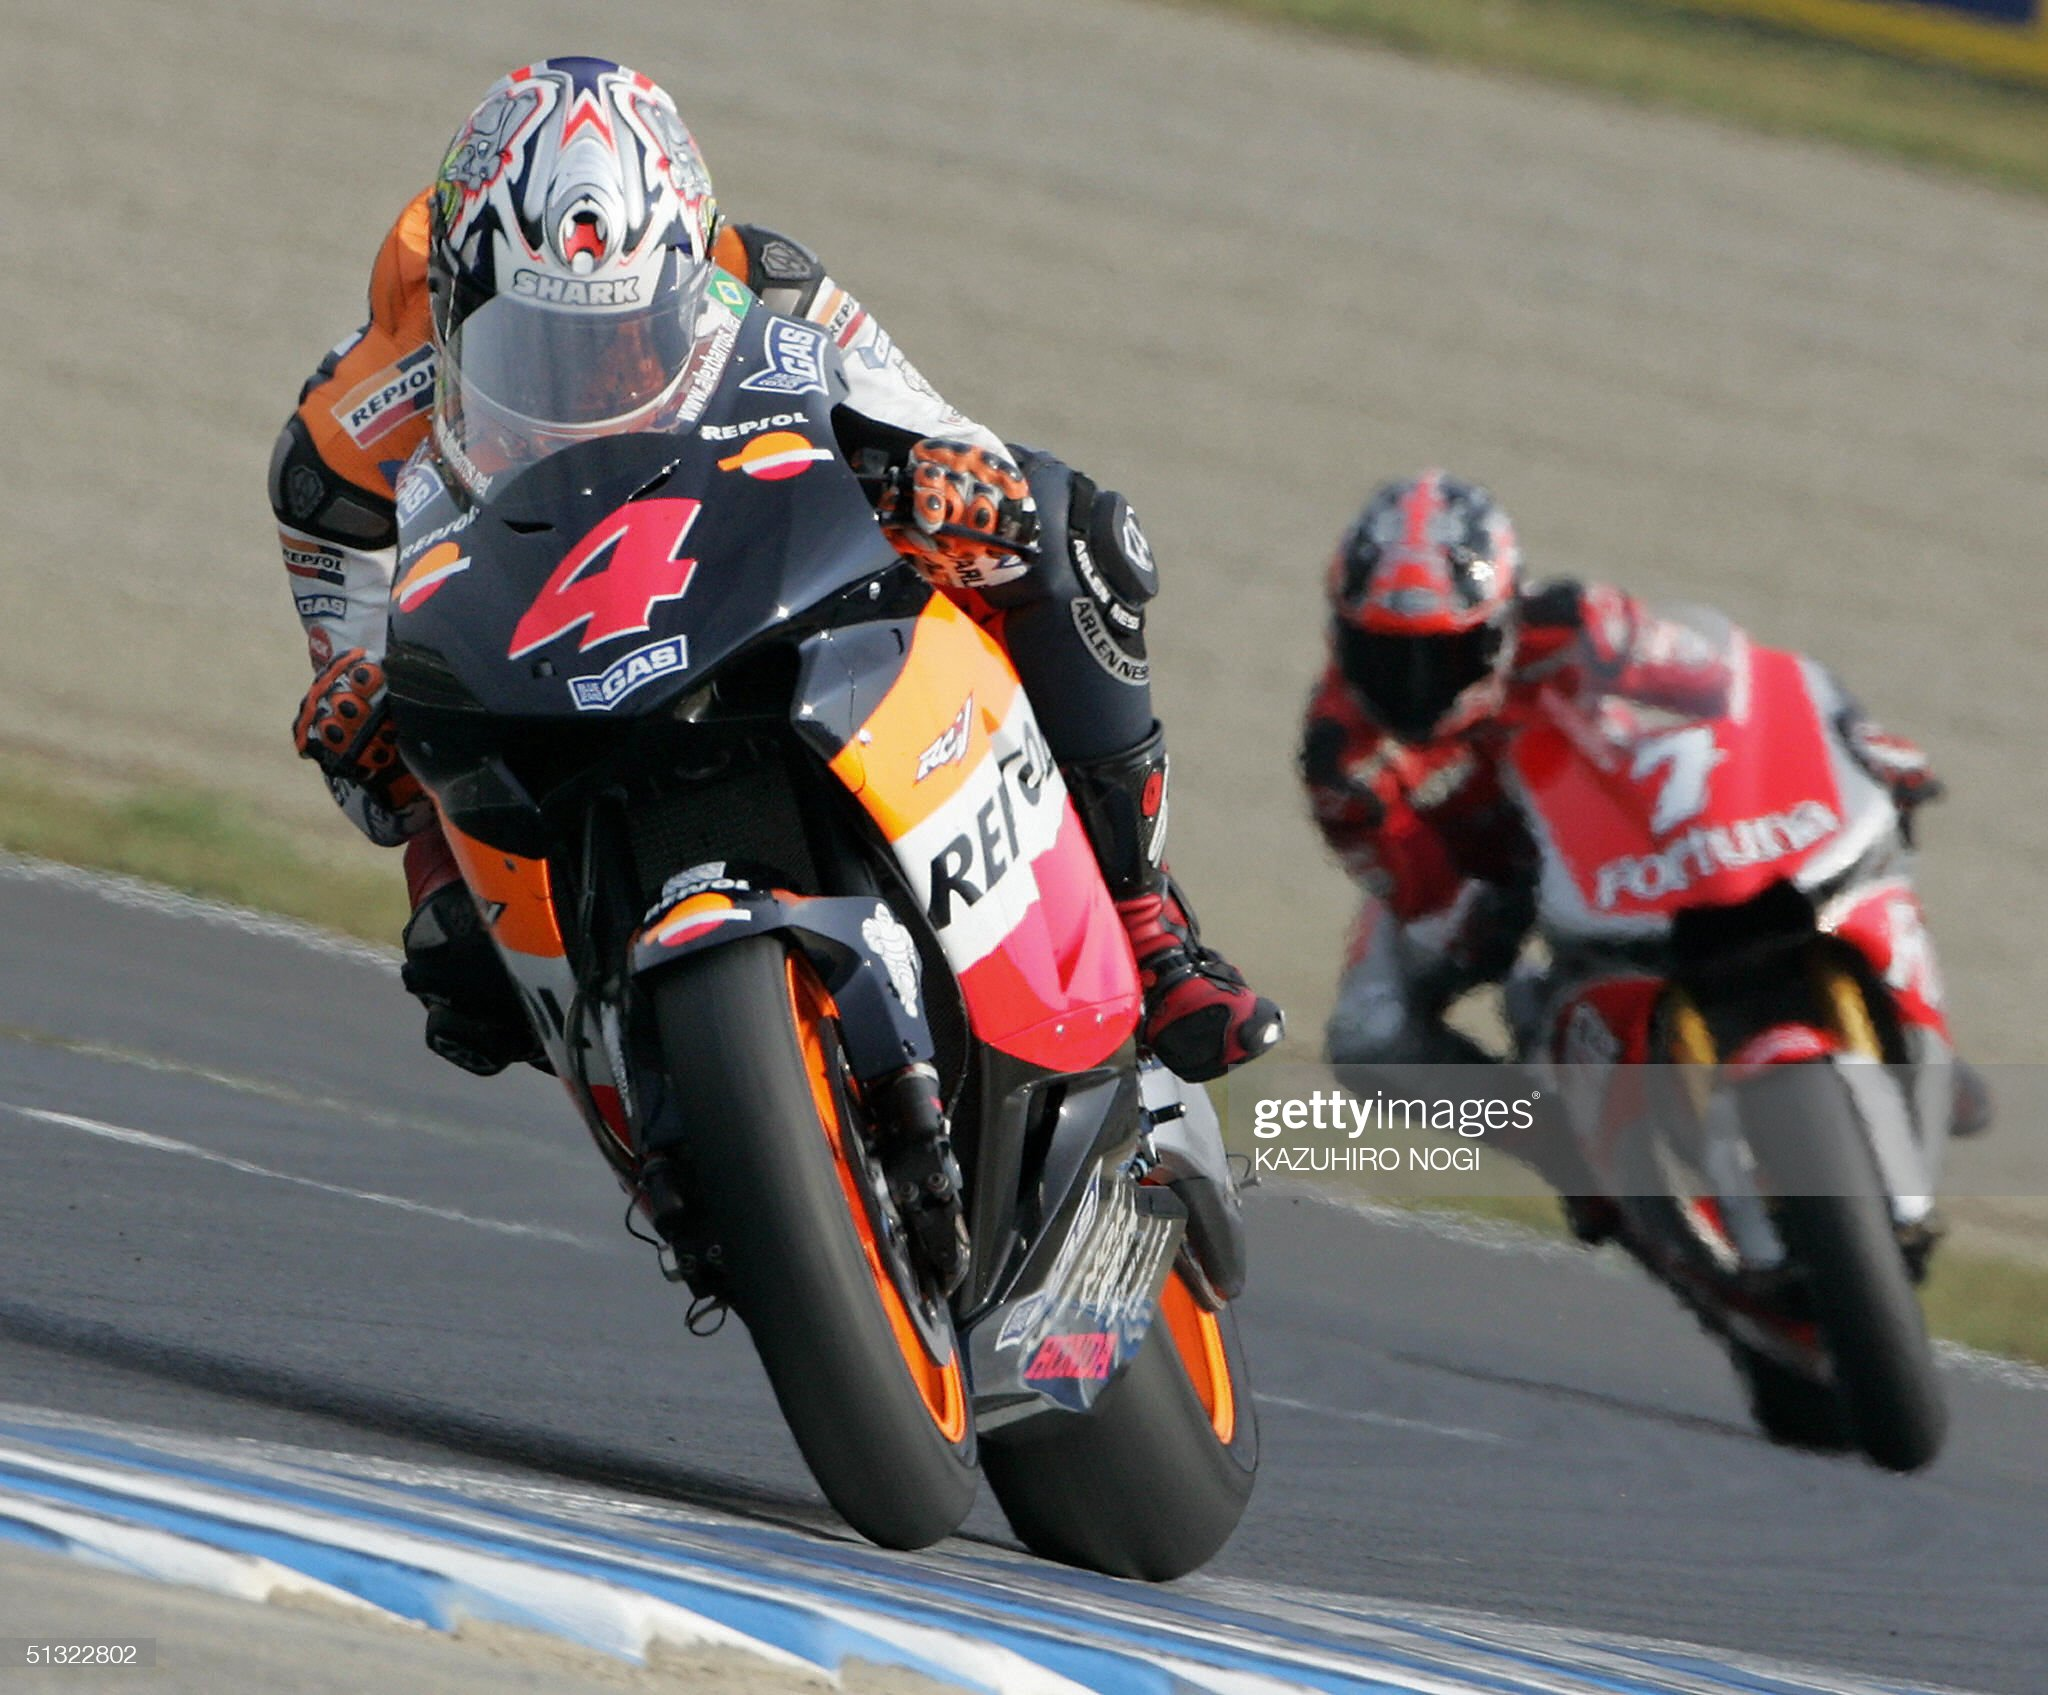 spains-motogp-rider-alex-barros-of-honda